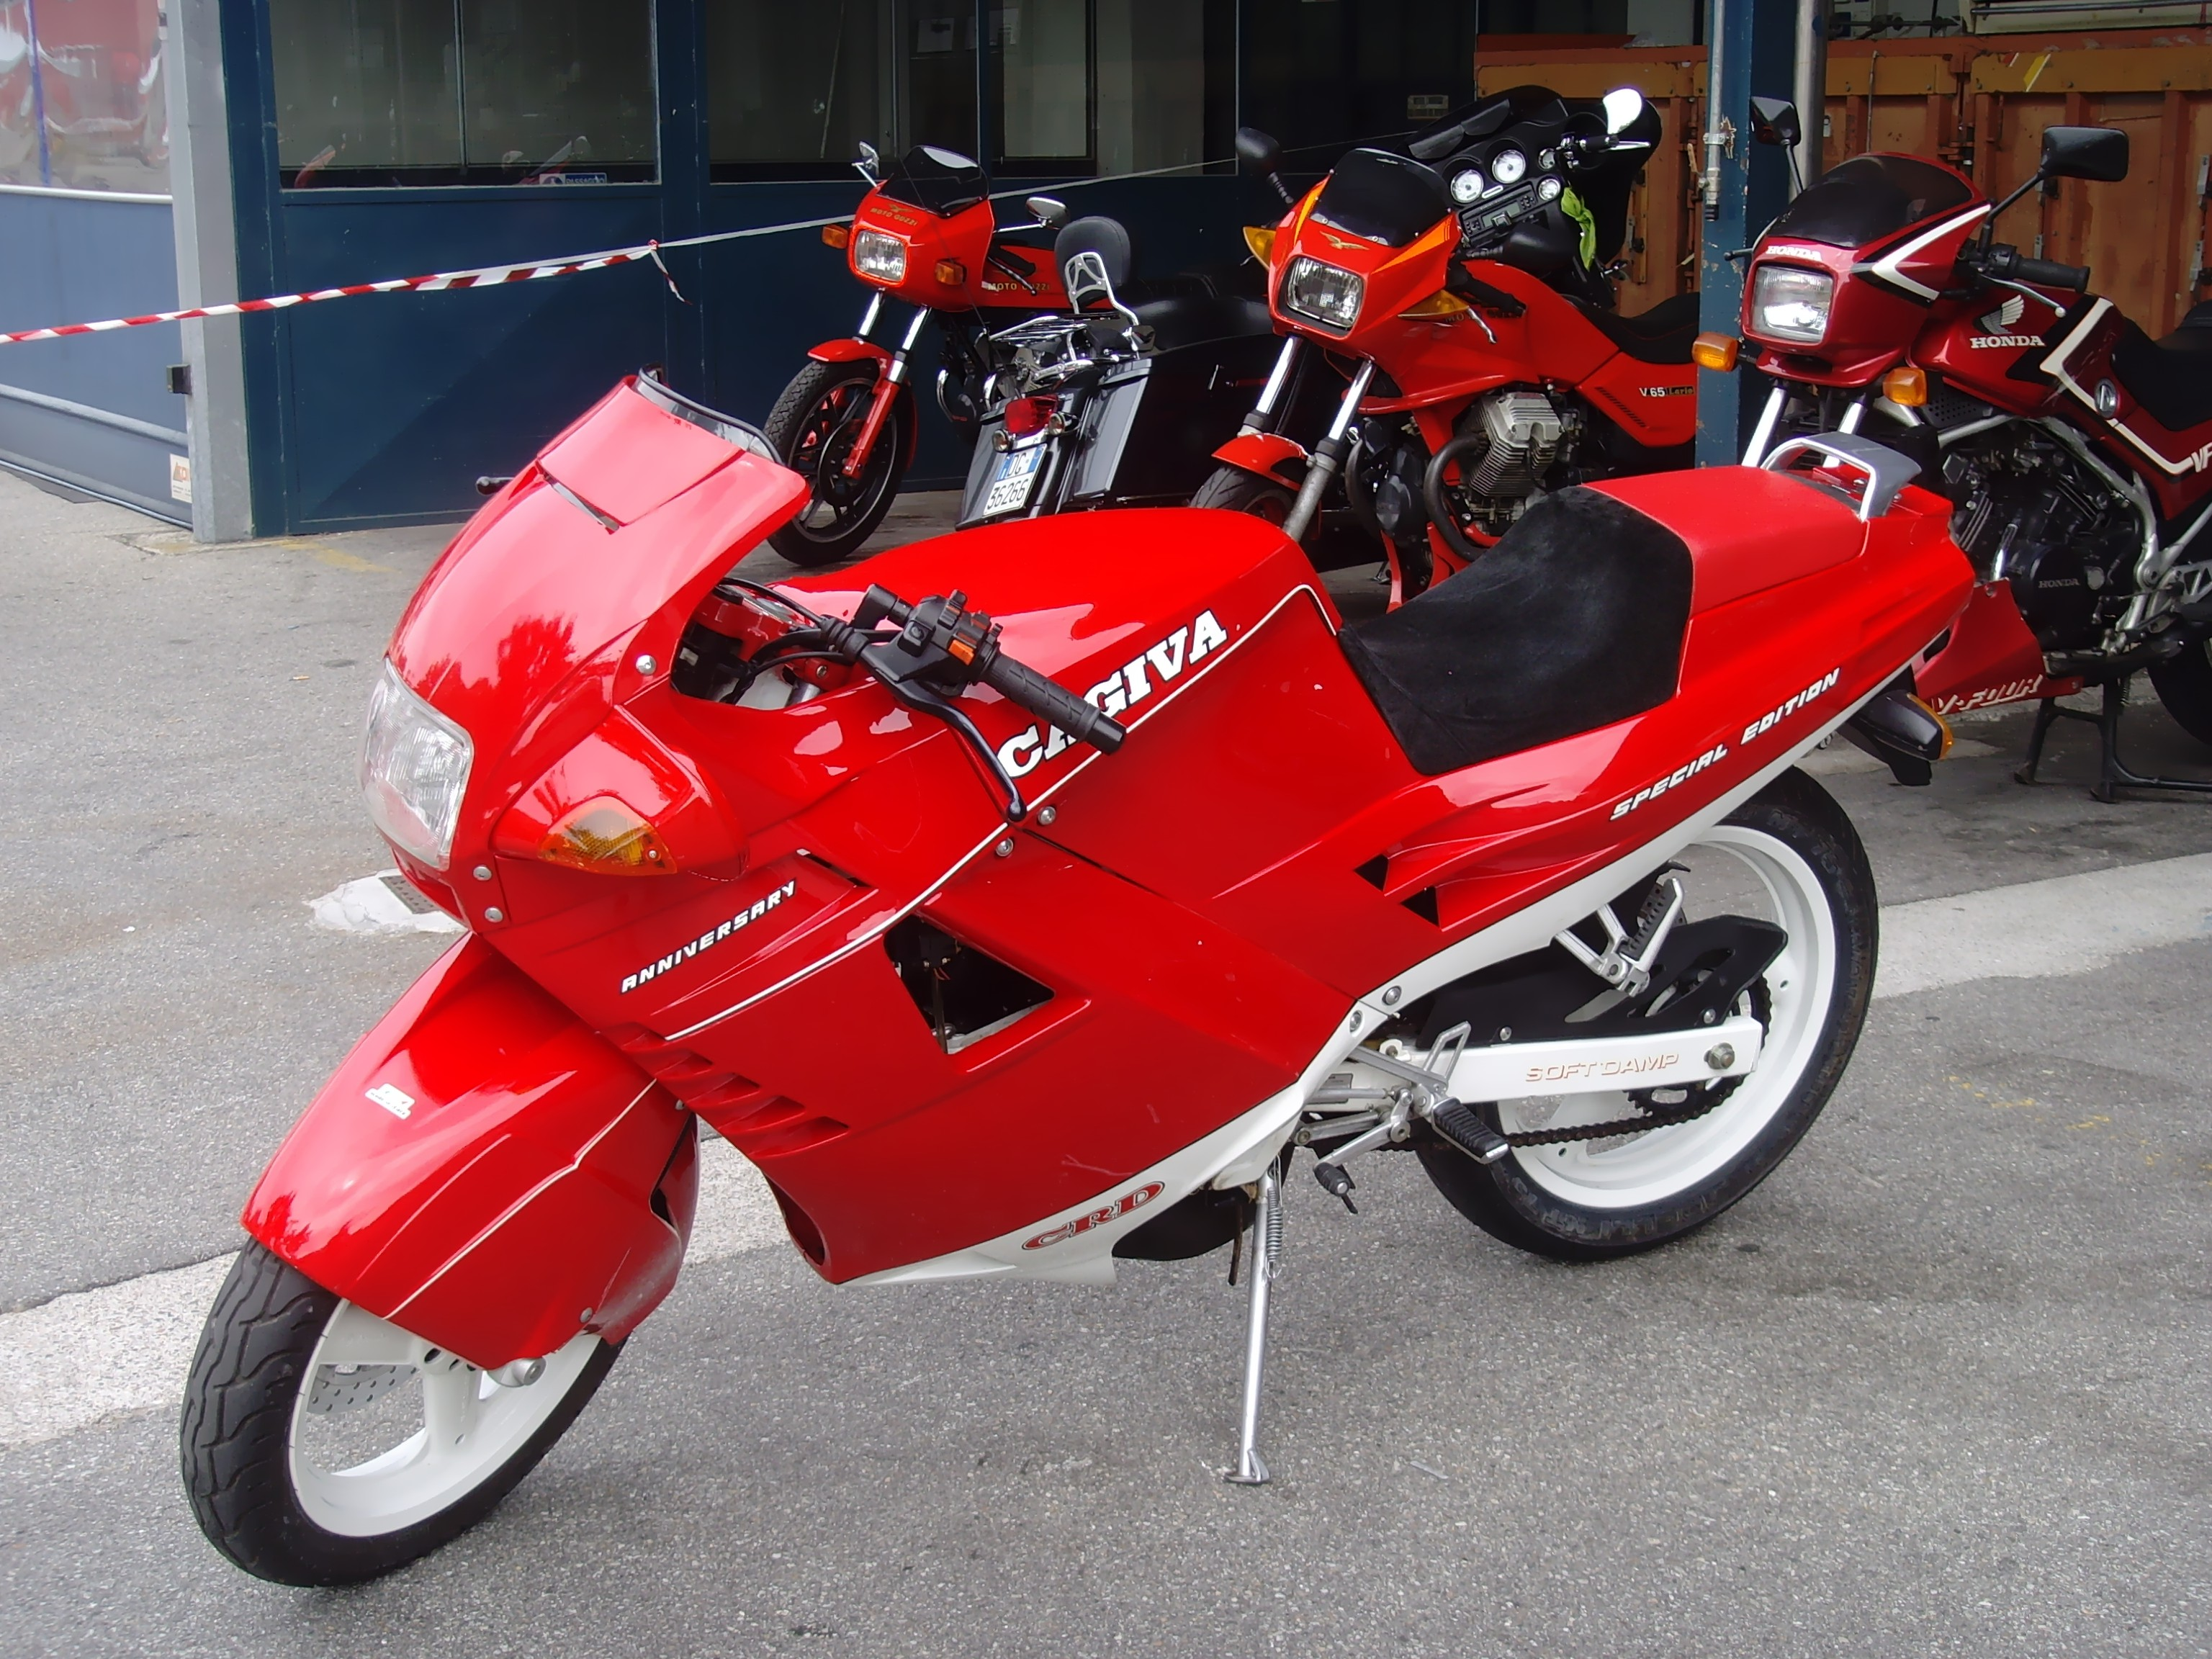 Cagiva images #68634